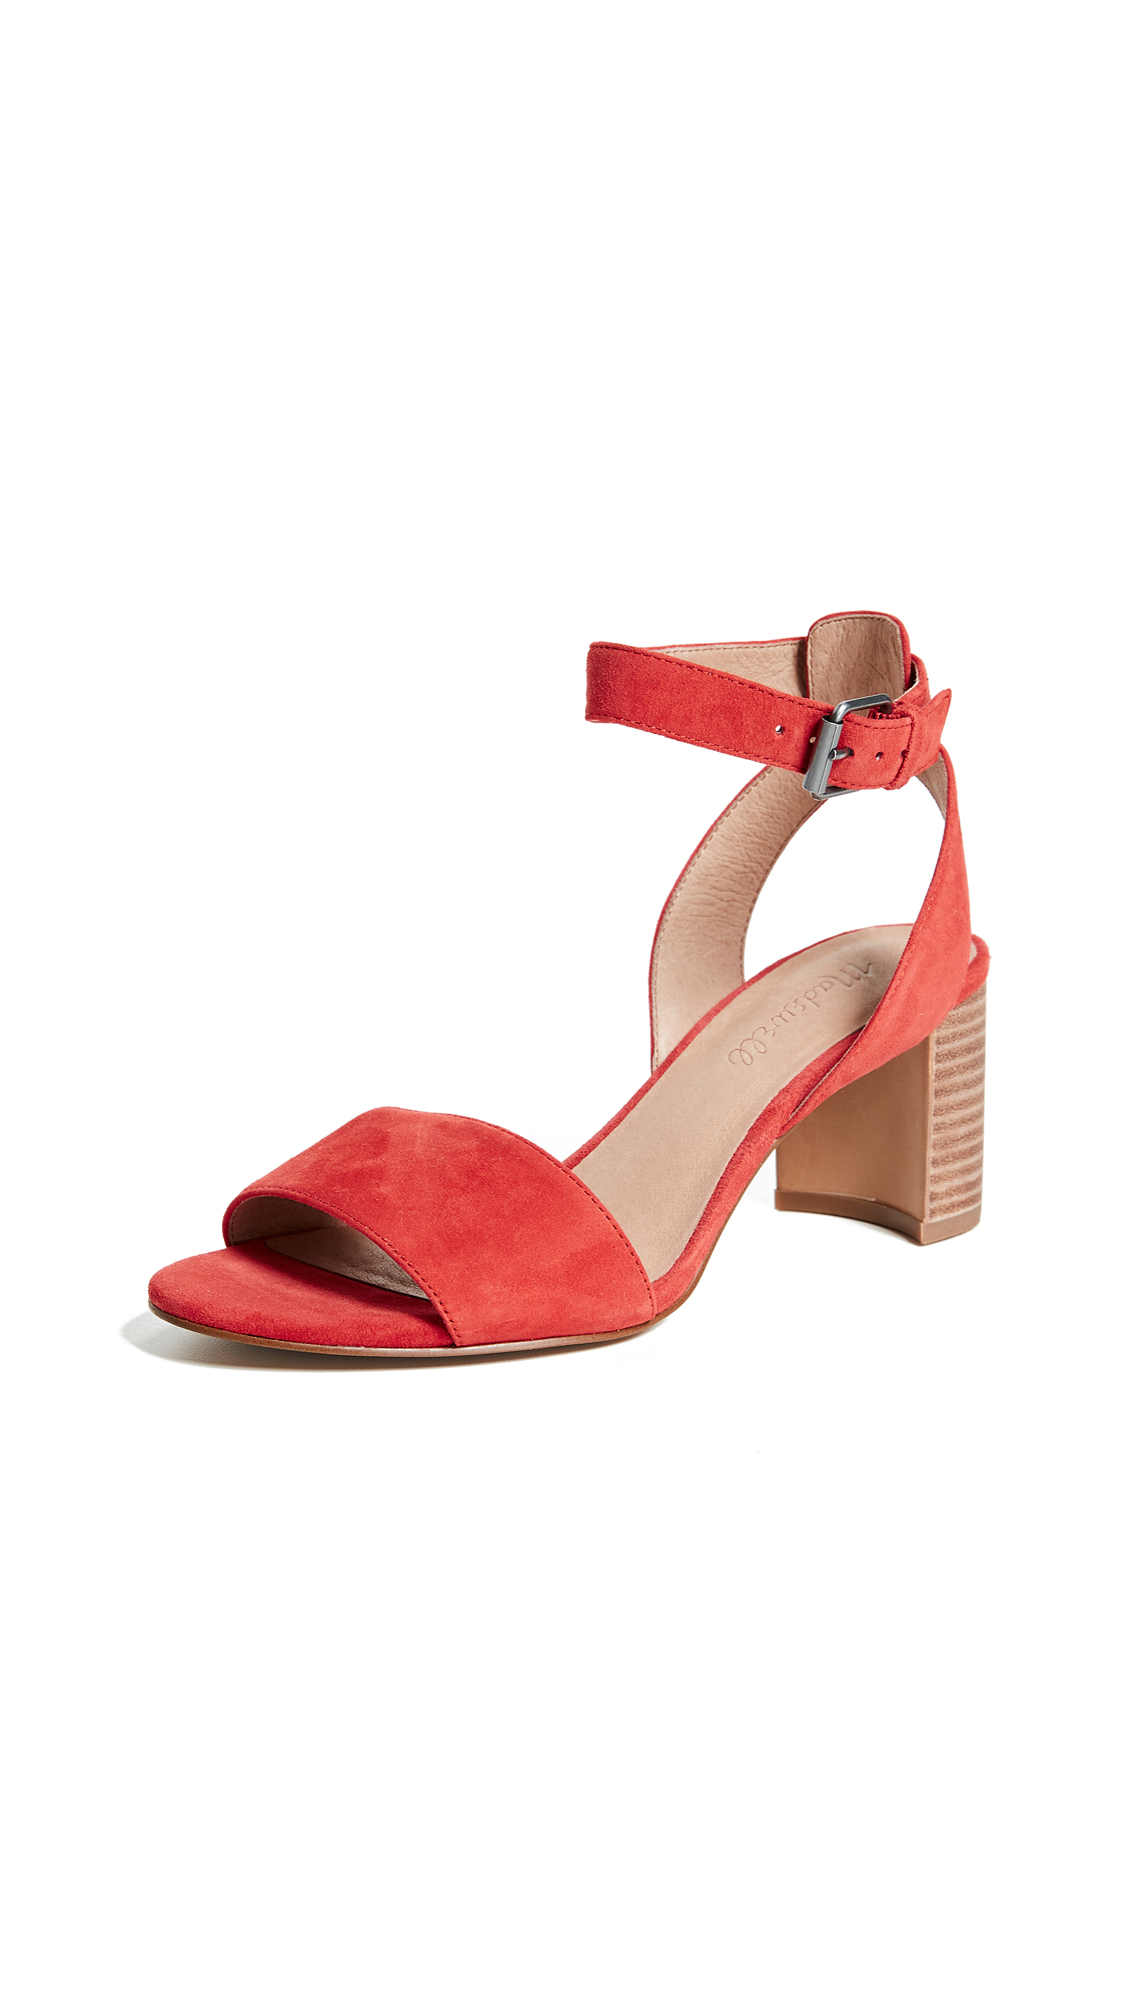 Madewell Bridget Sandals - Siberian Red